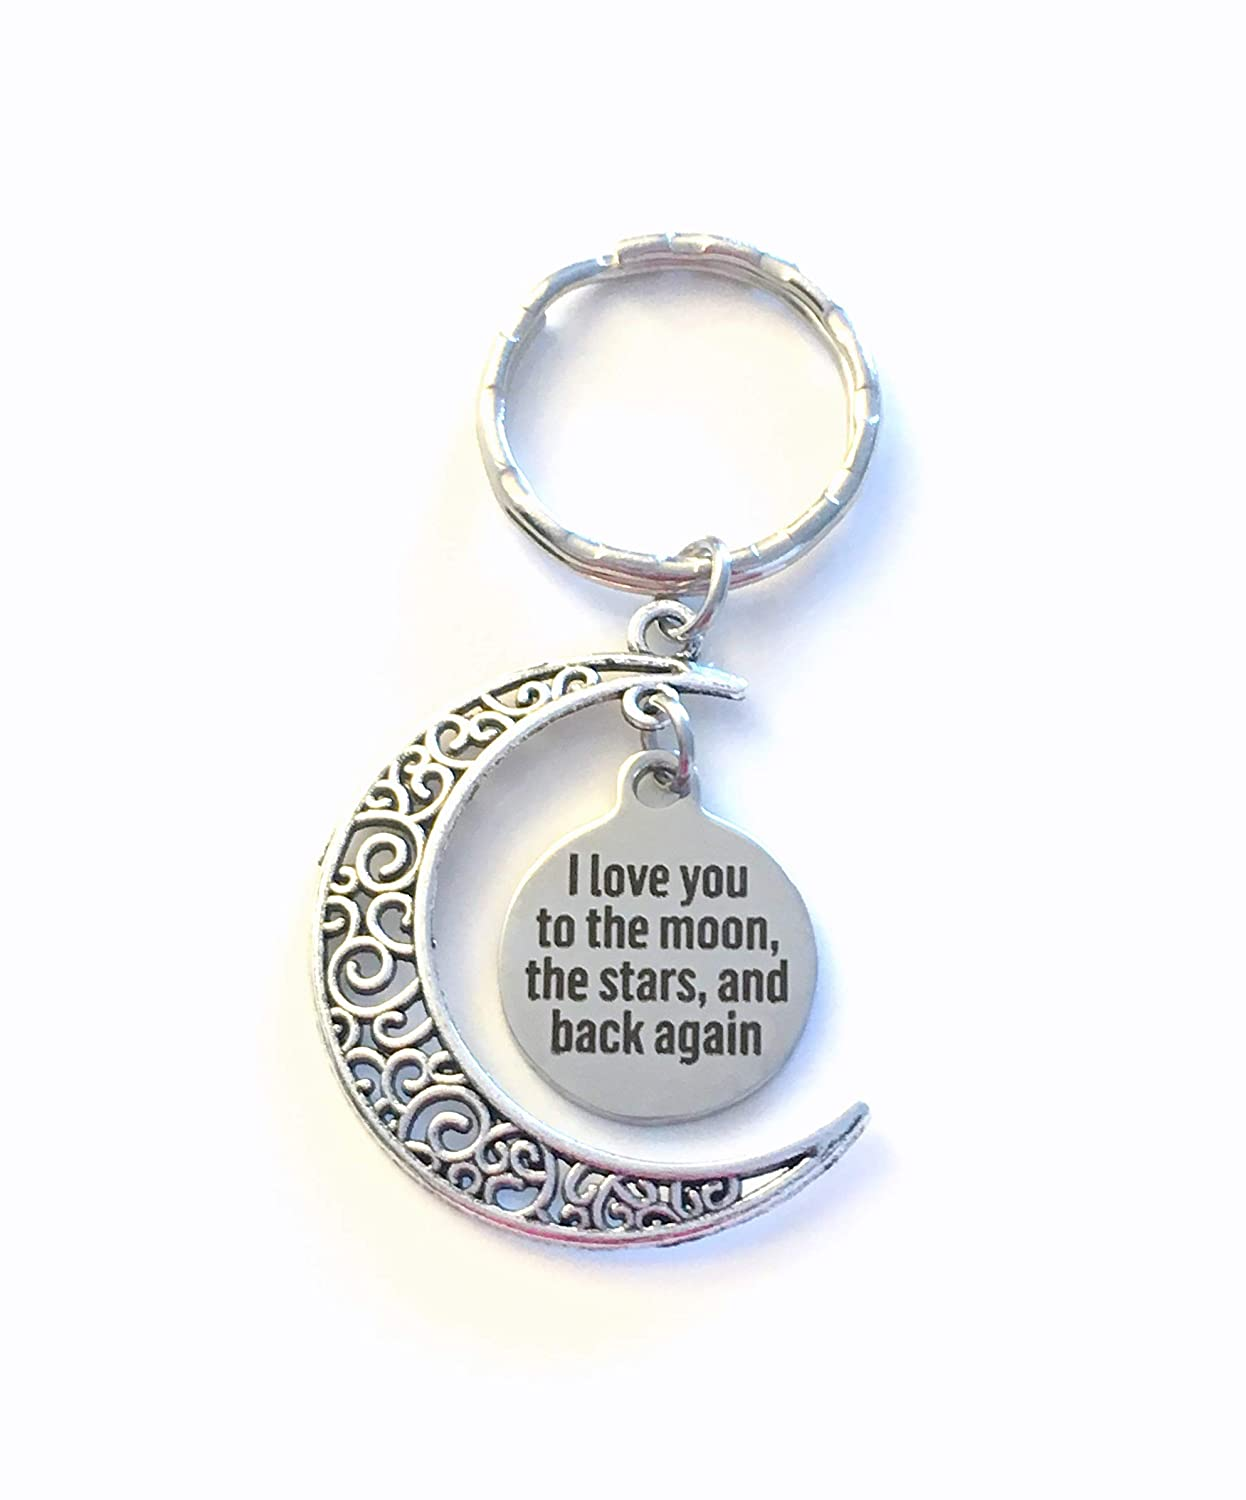 Long Distance Key Chain or Moving away present for children I love you to the moon Birthday Gift for Daughter or Son stars and back again Keychain